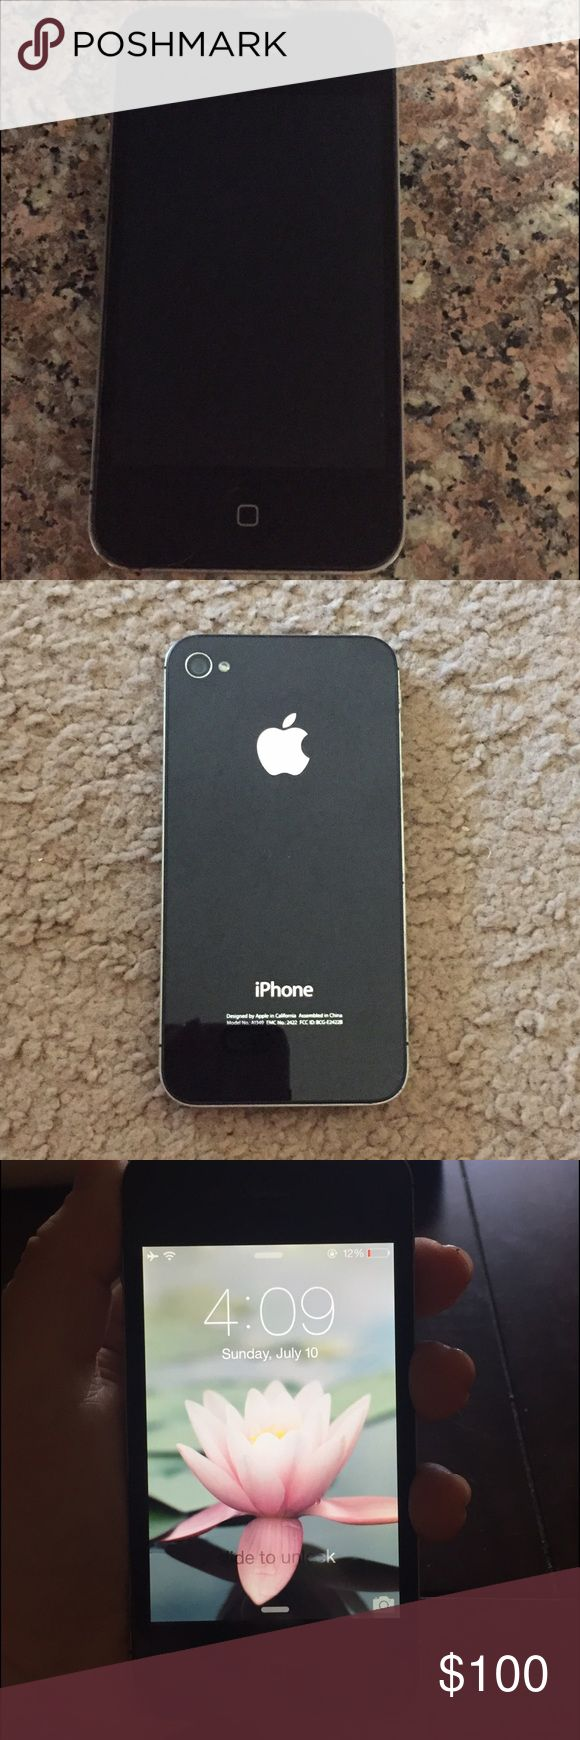 iPhone 4- Black iPhone 4 - 8GB - Black No scratches/cracks. Like - new condition  The phone will be restored and fully charged when bought. Apple Other